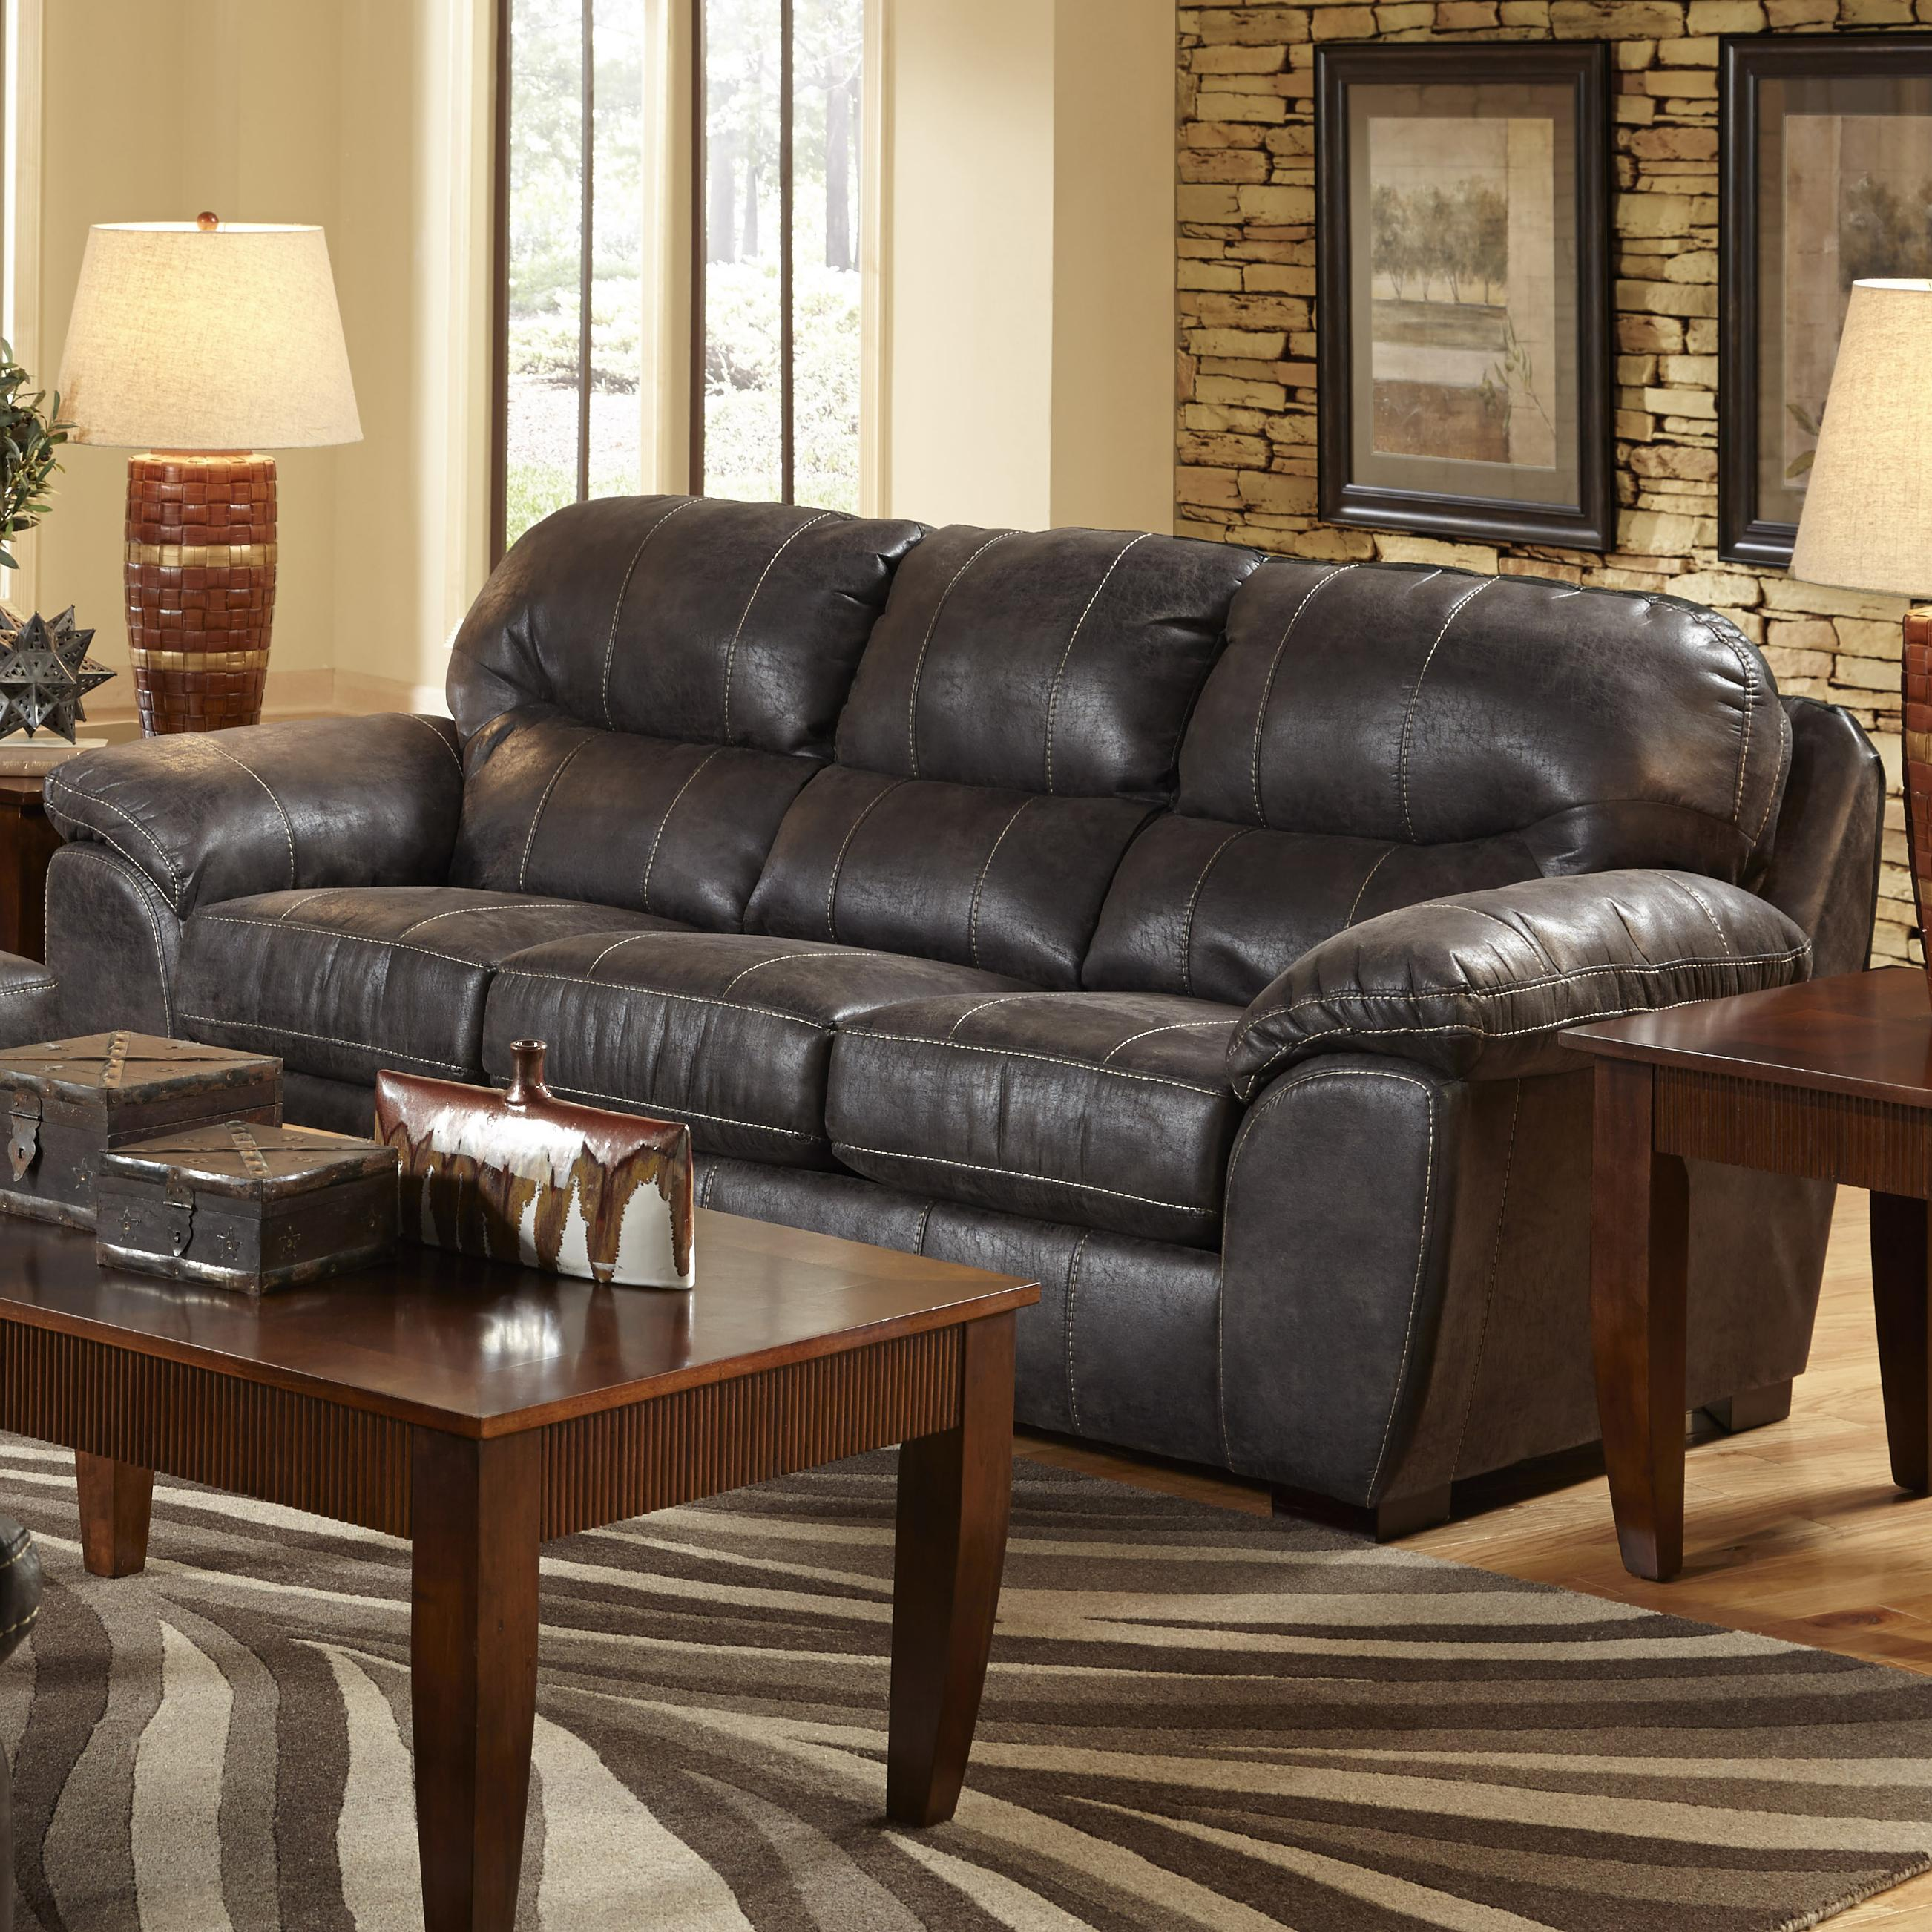 Grant Sofa by Jackson Furniture at Rooms for Less